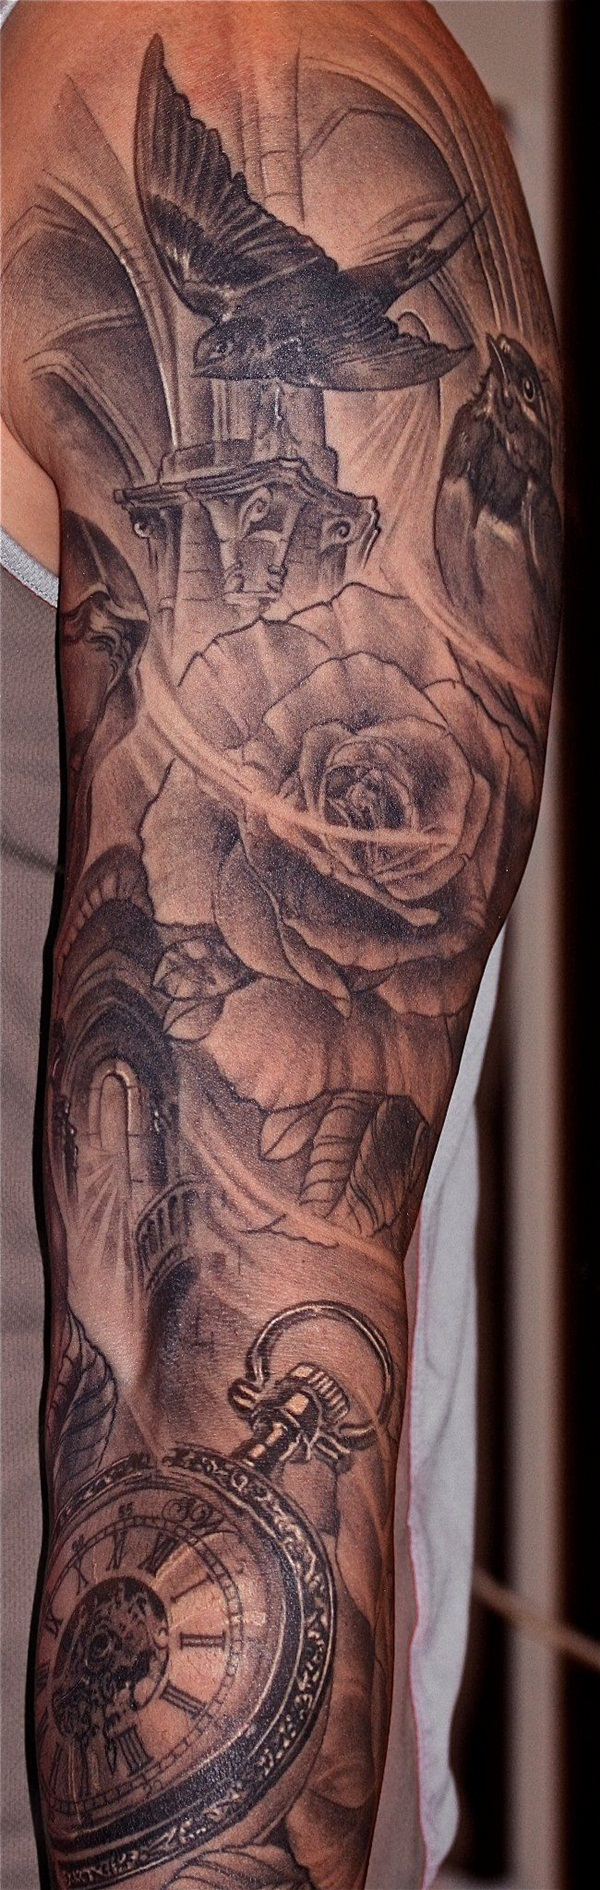 Sleeve tattoo designs (34)